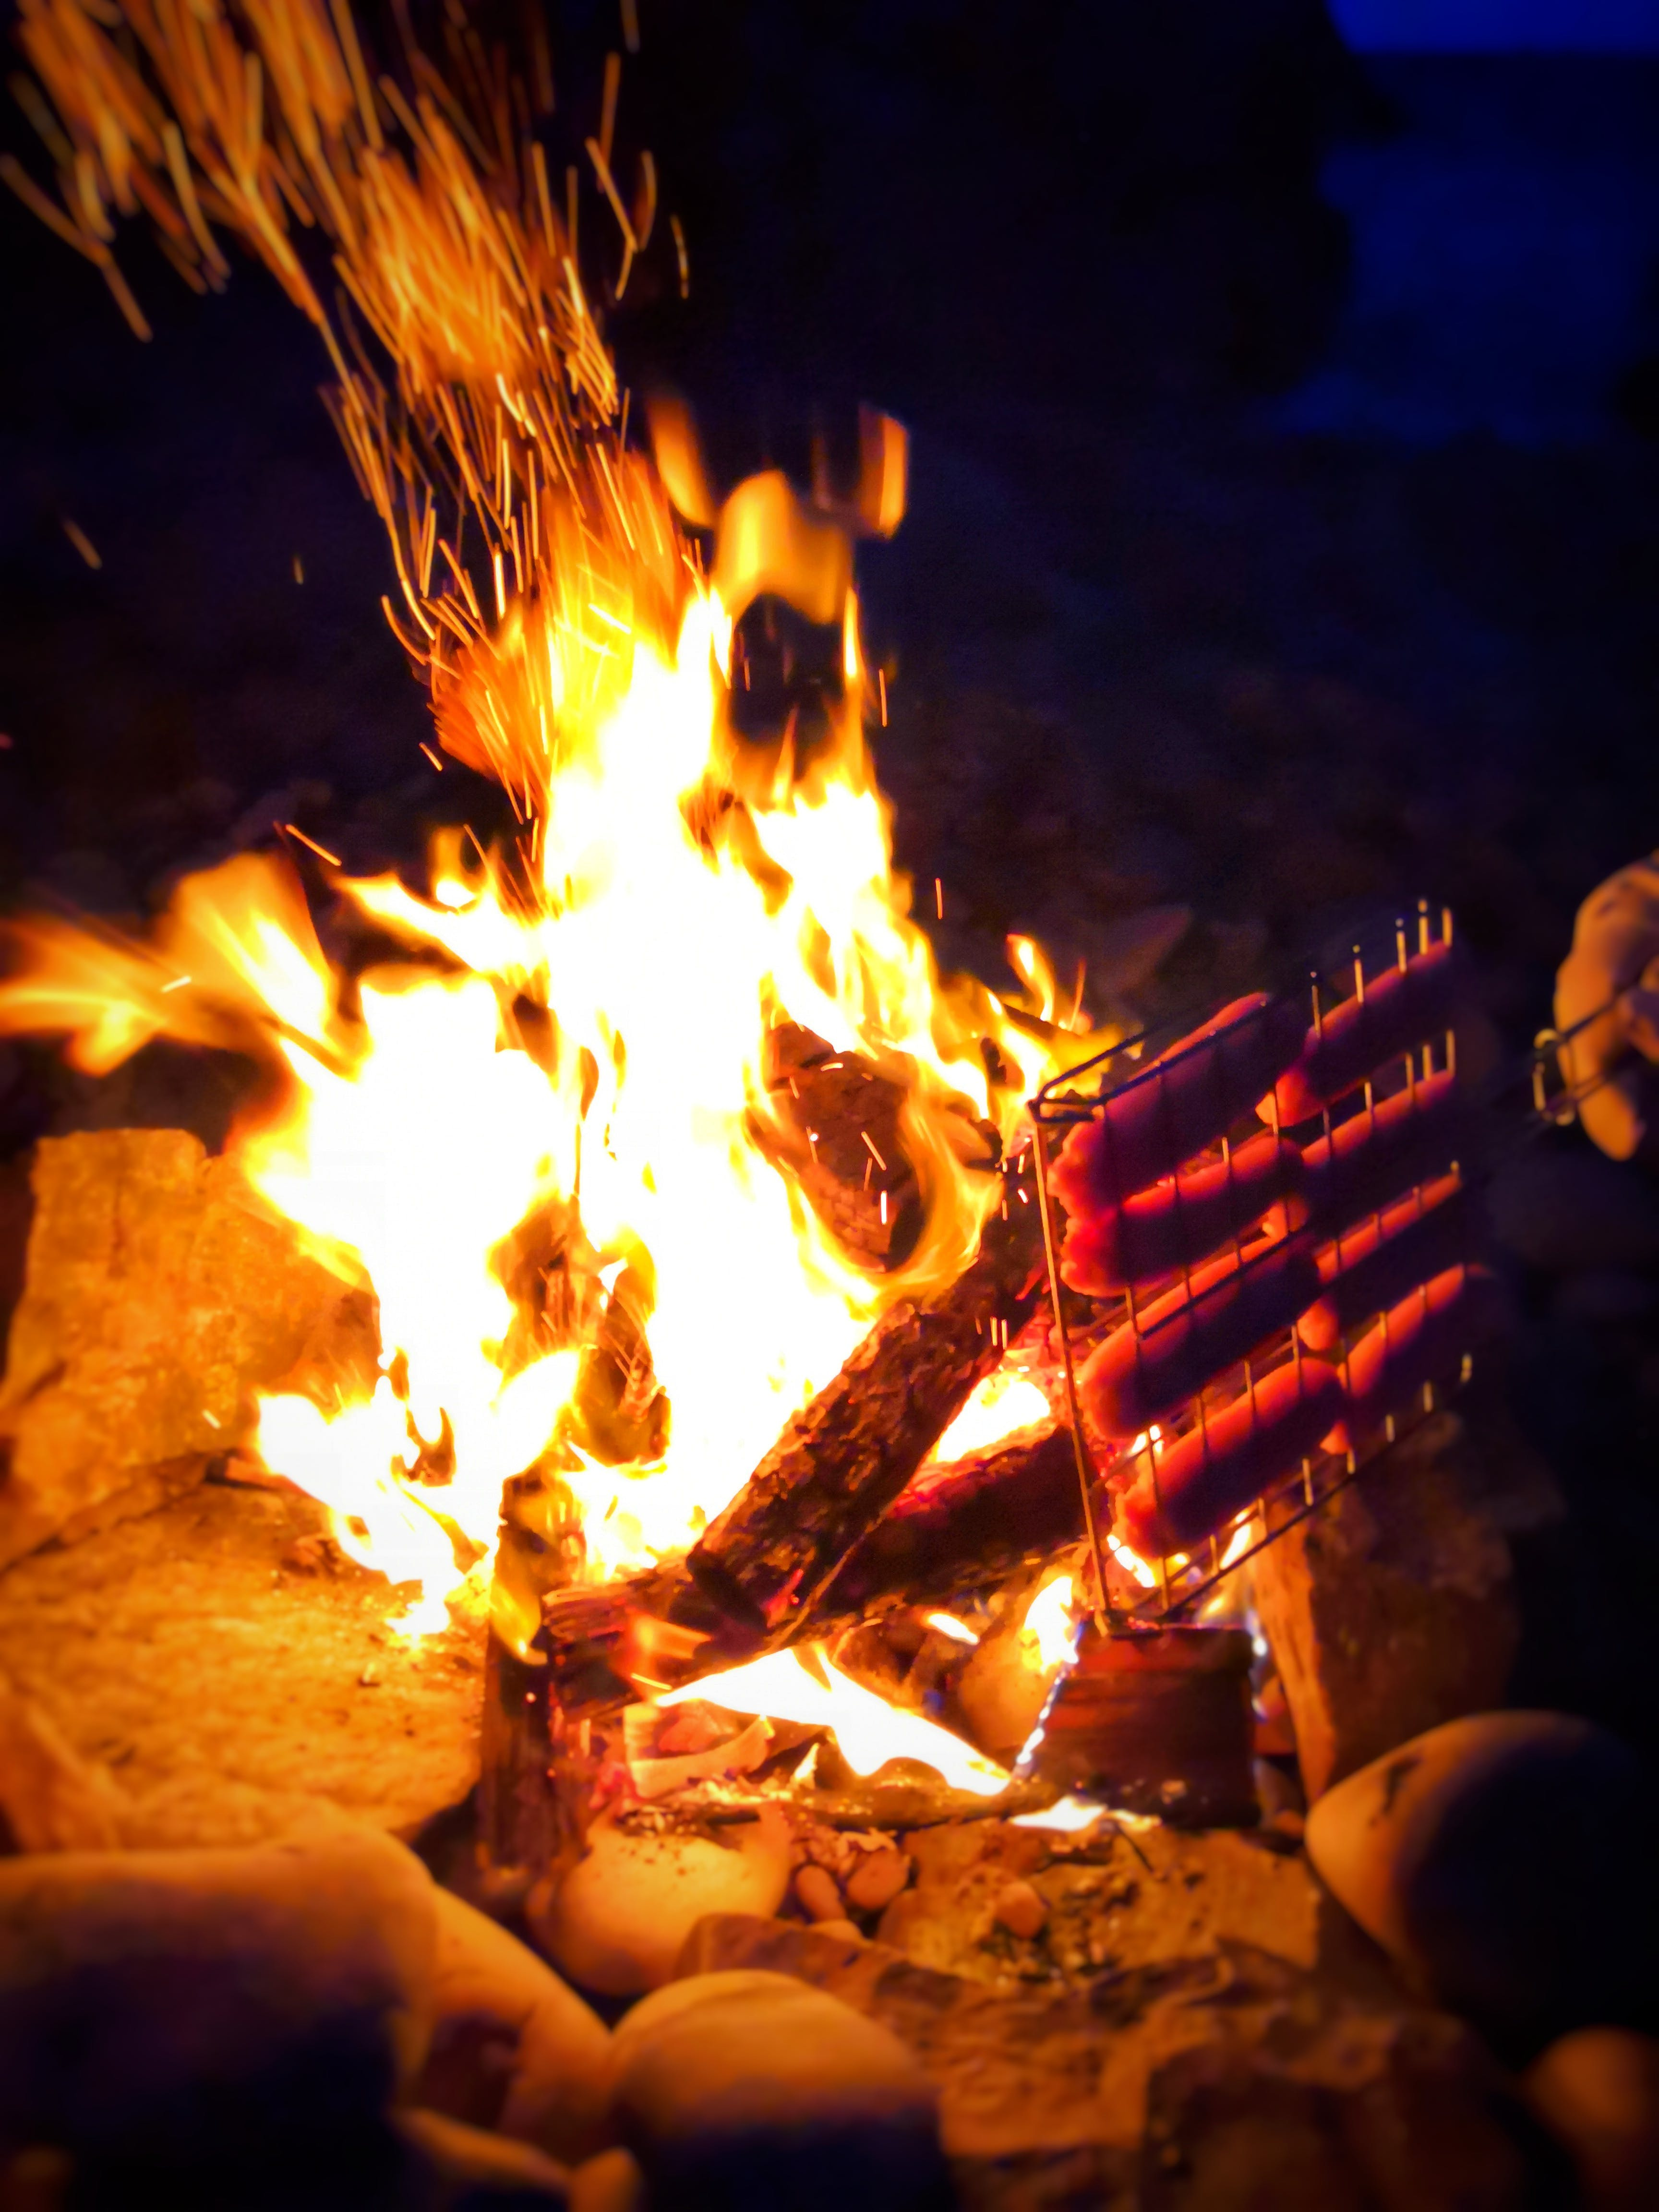 Free stock photo of camping, fire, flames, heat